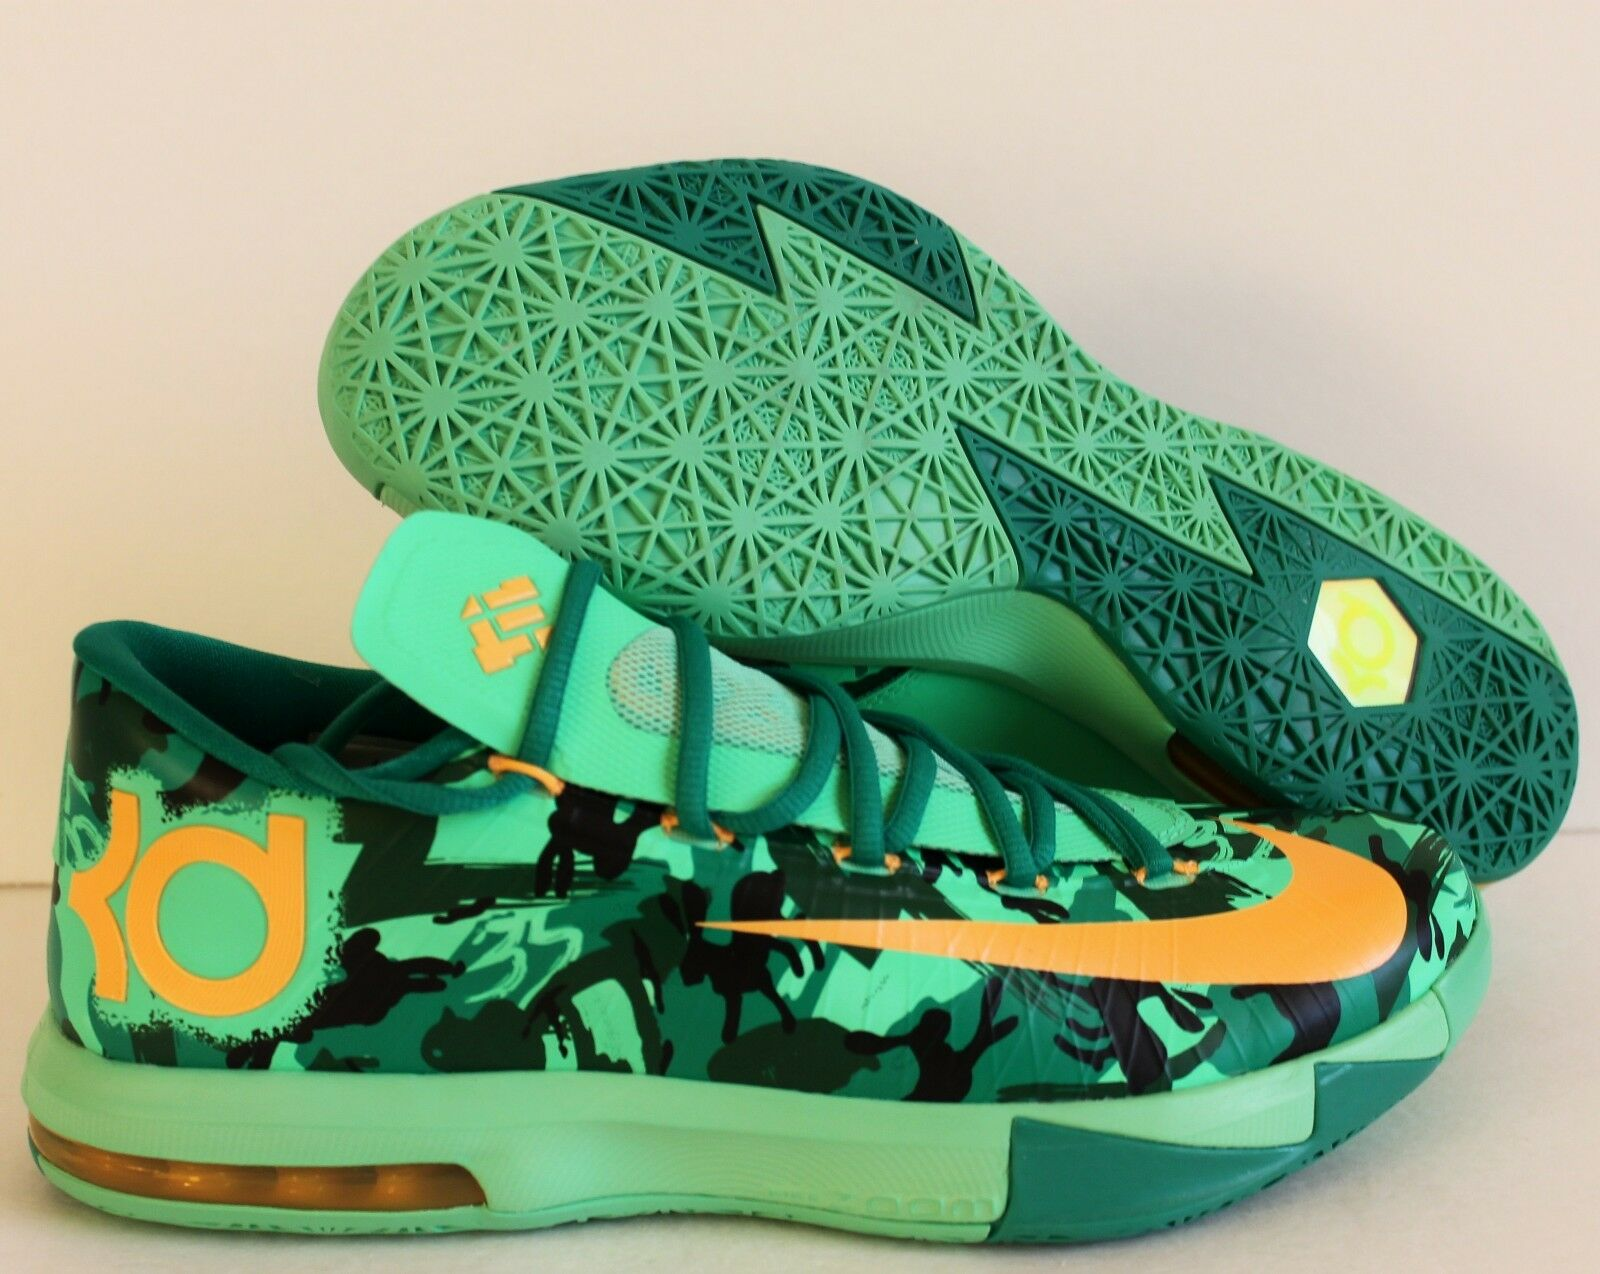 NIKE KD VI 6 EASTER LIGHT LUCID GREEN SZ 11 [599424-303]